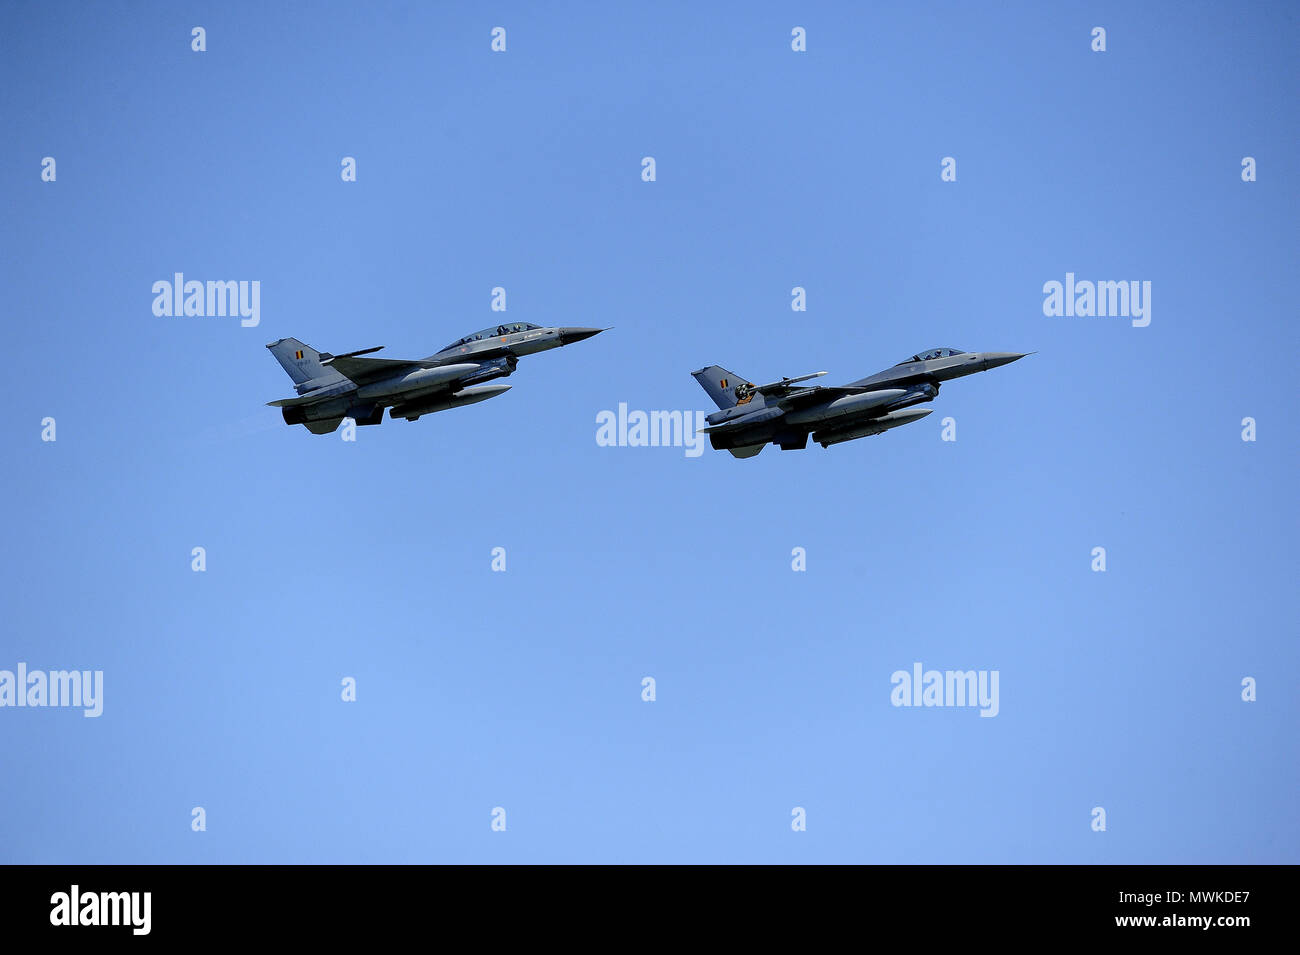 aviation, flight, aircraft, military, fighter, air attack, unit, safety, space, air corridor, location, navigation, fly, high fly, Military jet, Stock Photo